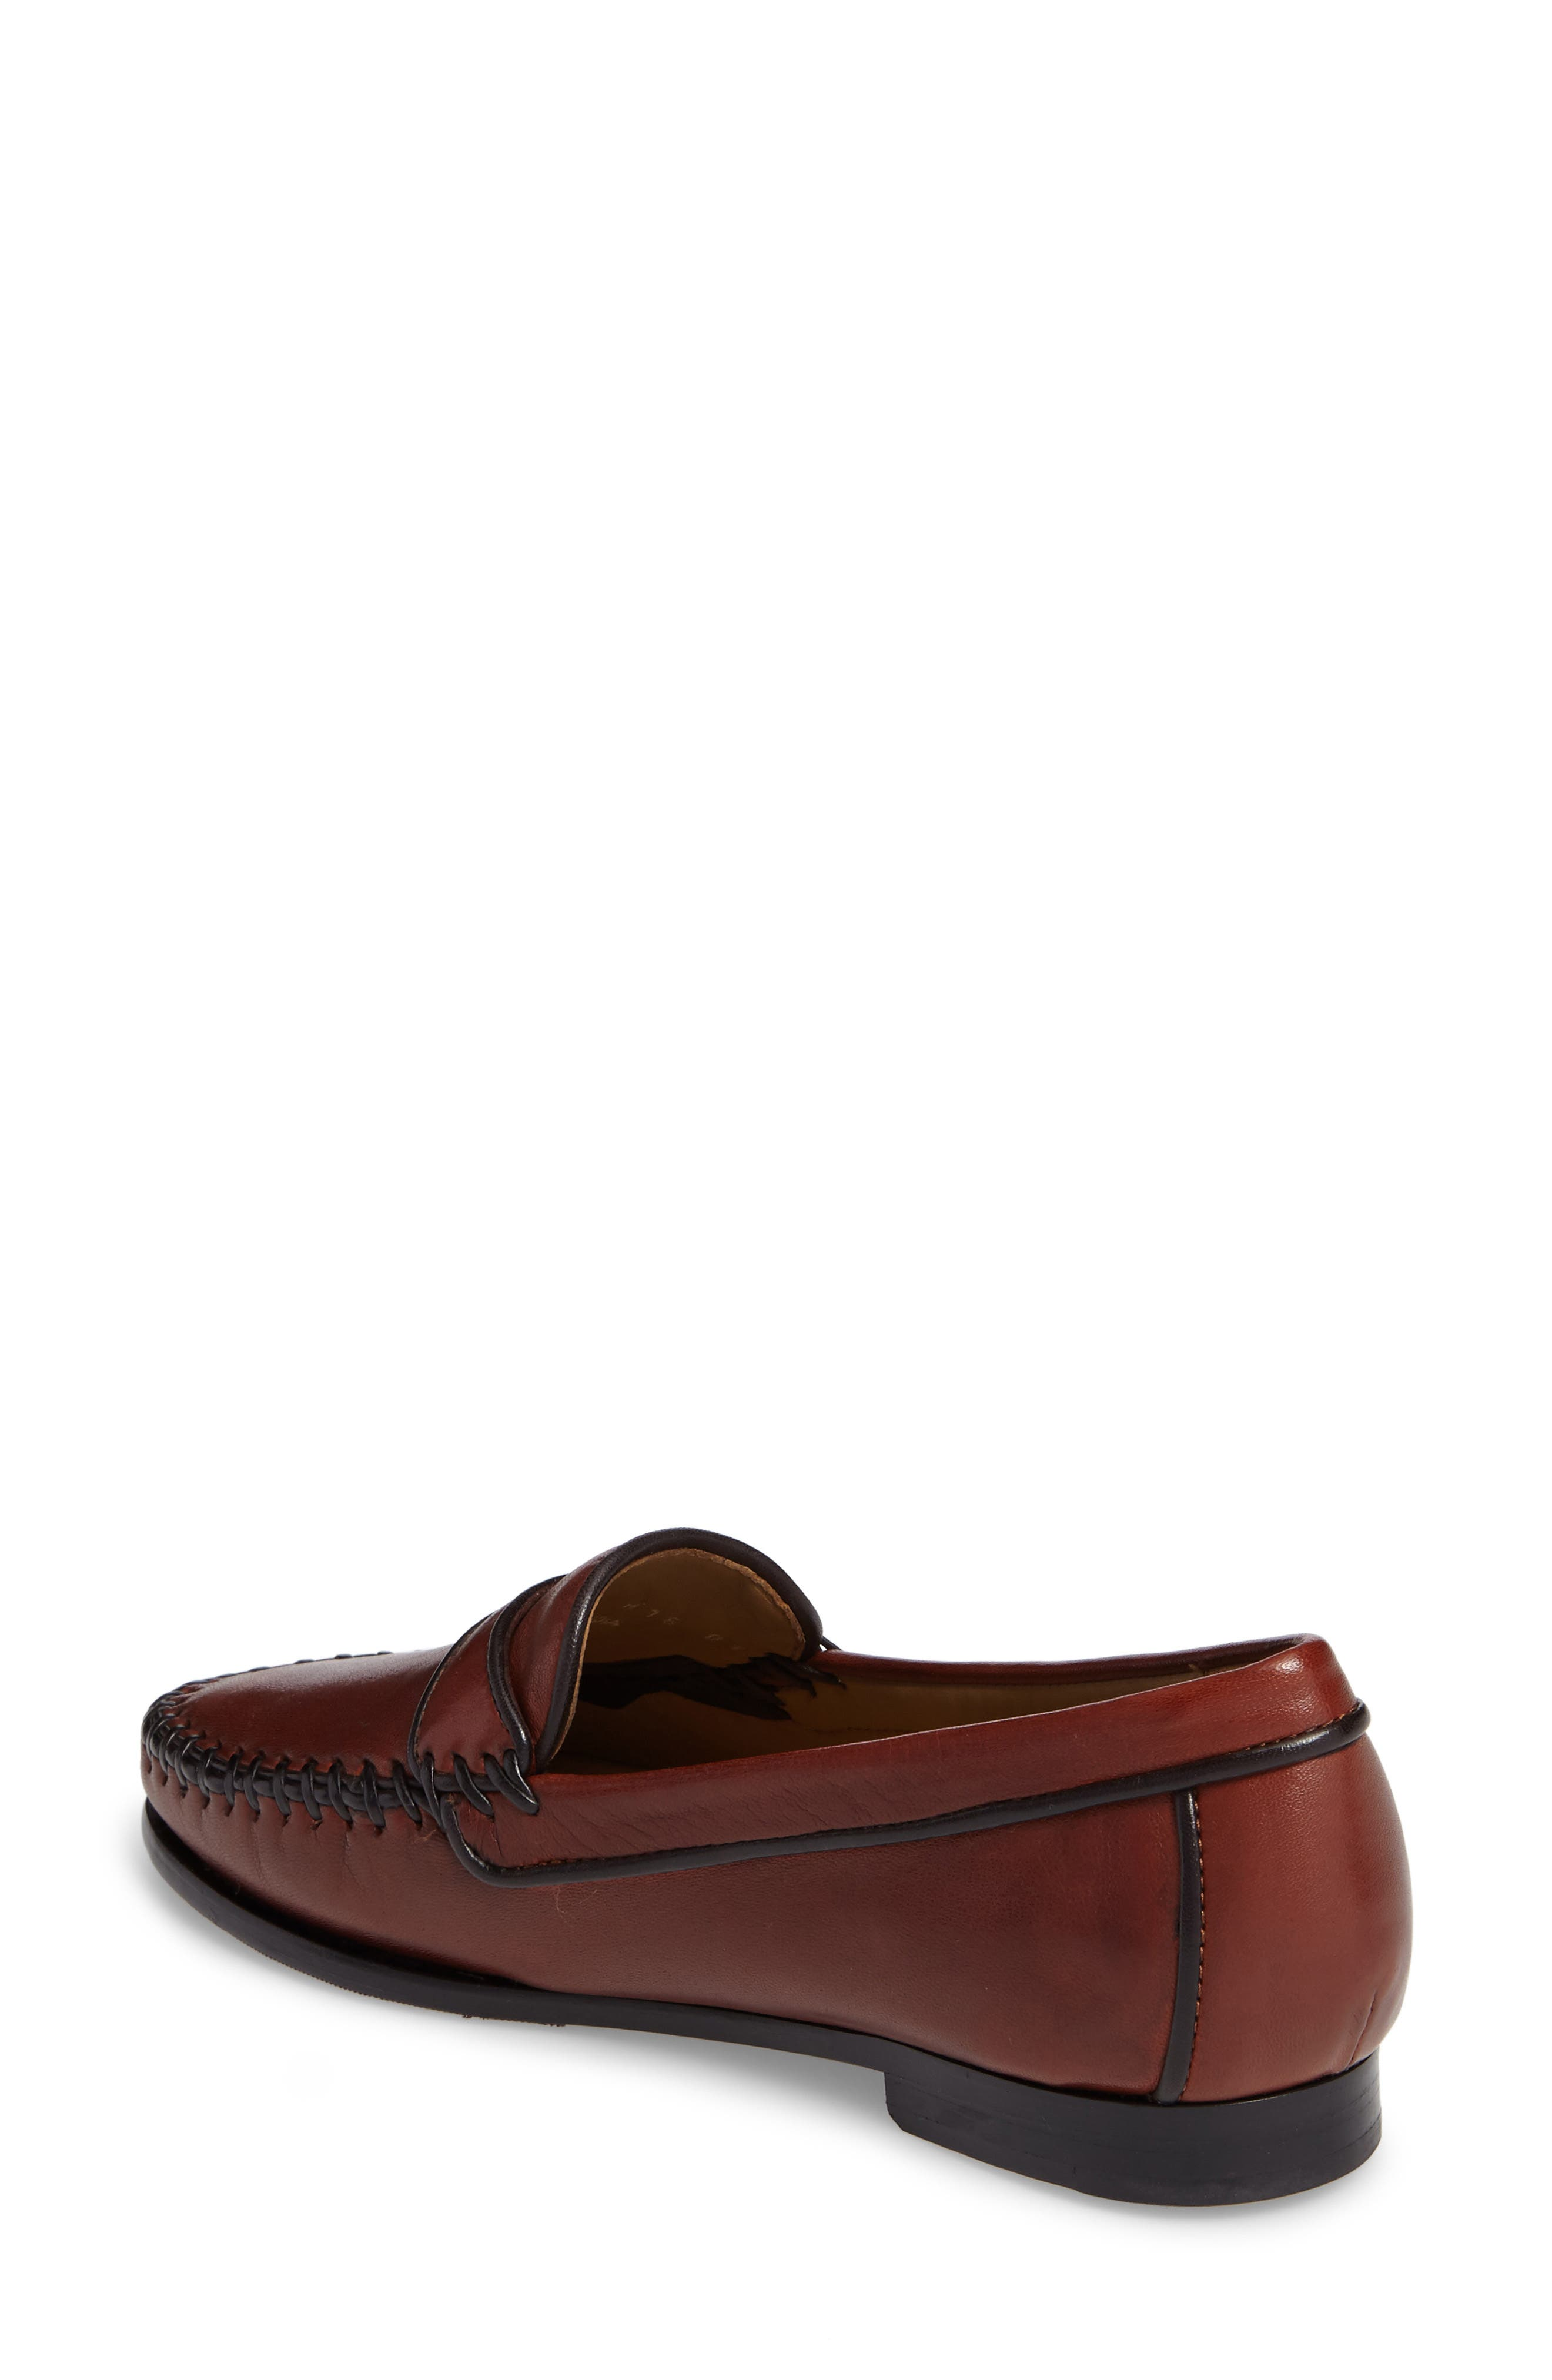 Aria Loafer,                             Alternate thumbnail 2, color,                             Vintage Luggage Leather